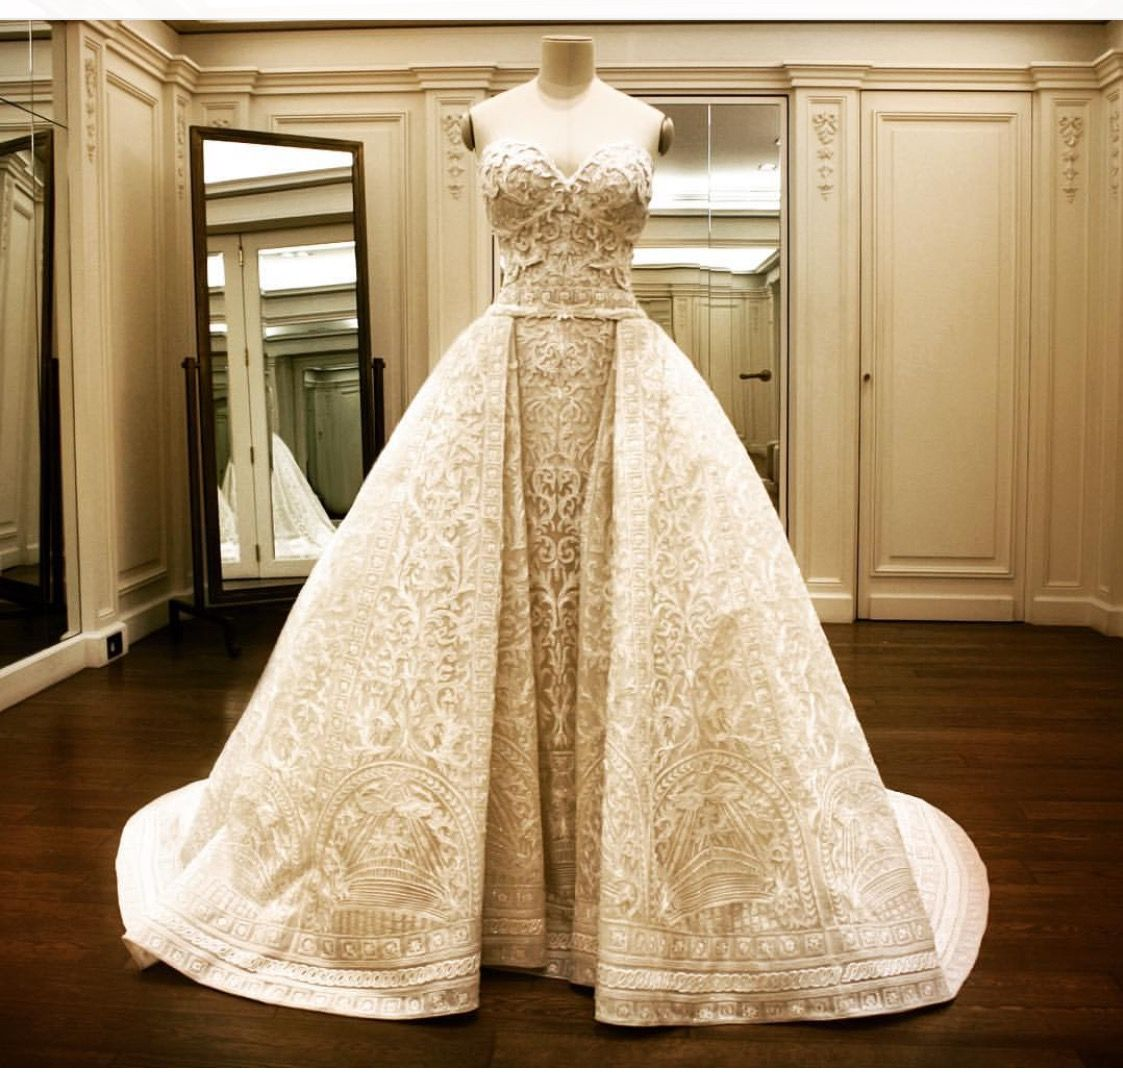 Sofia Vergara S Wedding Dress Gorgeous Over Skirt Removes Revealing A Form Fitting Straight Column Dress Sofia Vergara Wedding Dress Wedding Dresses Gowns